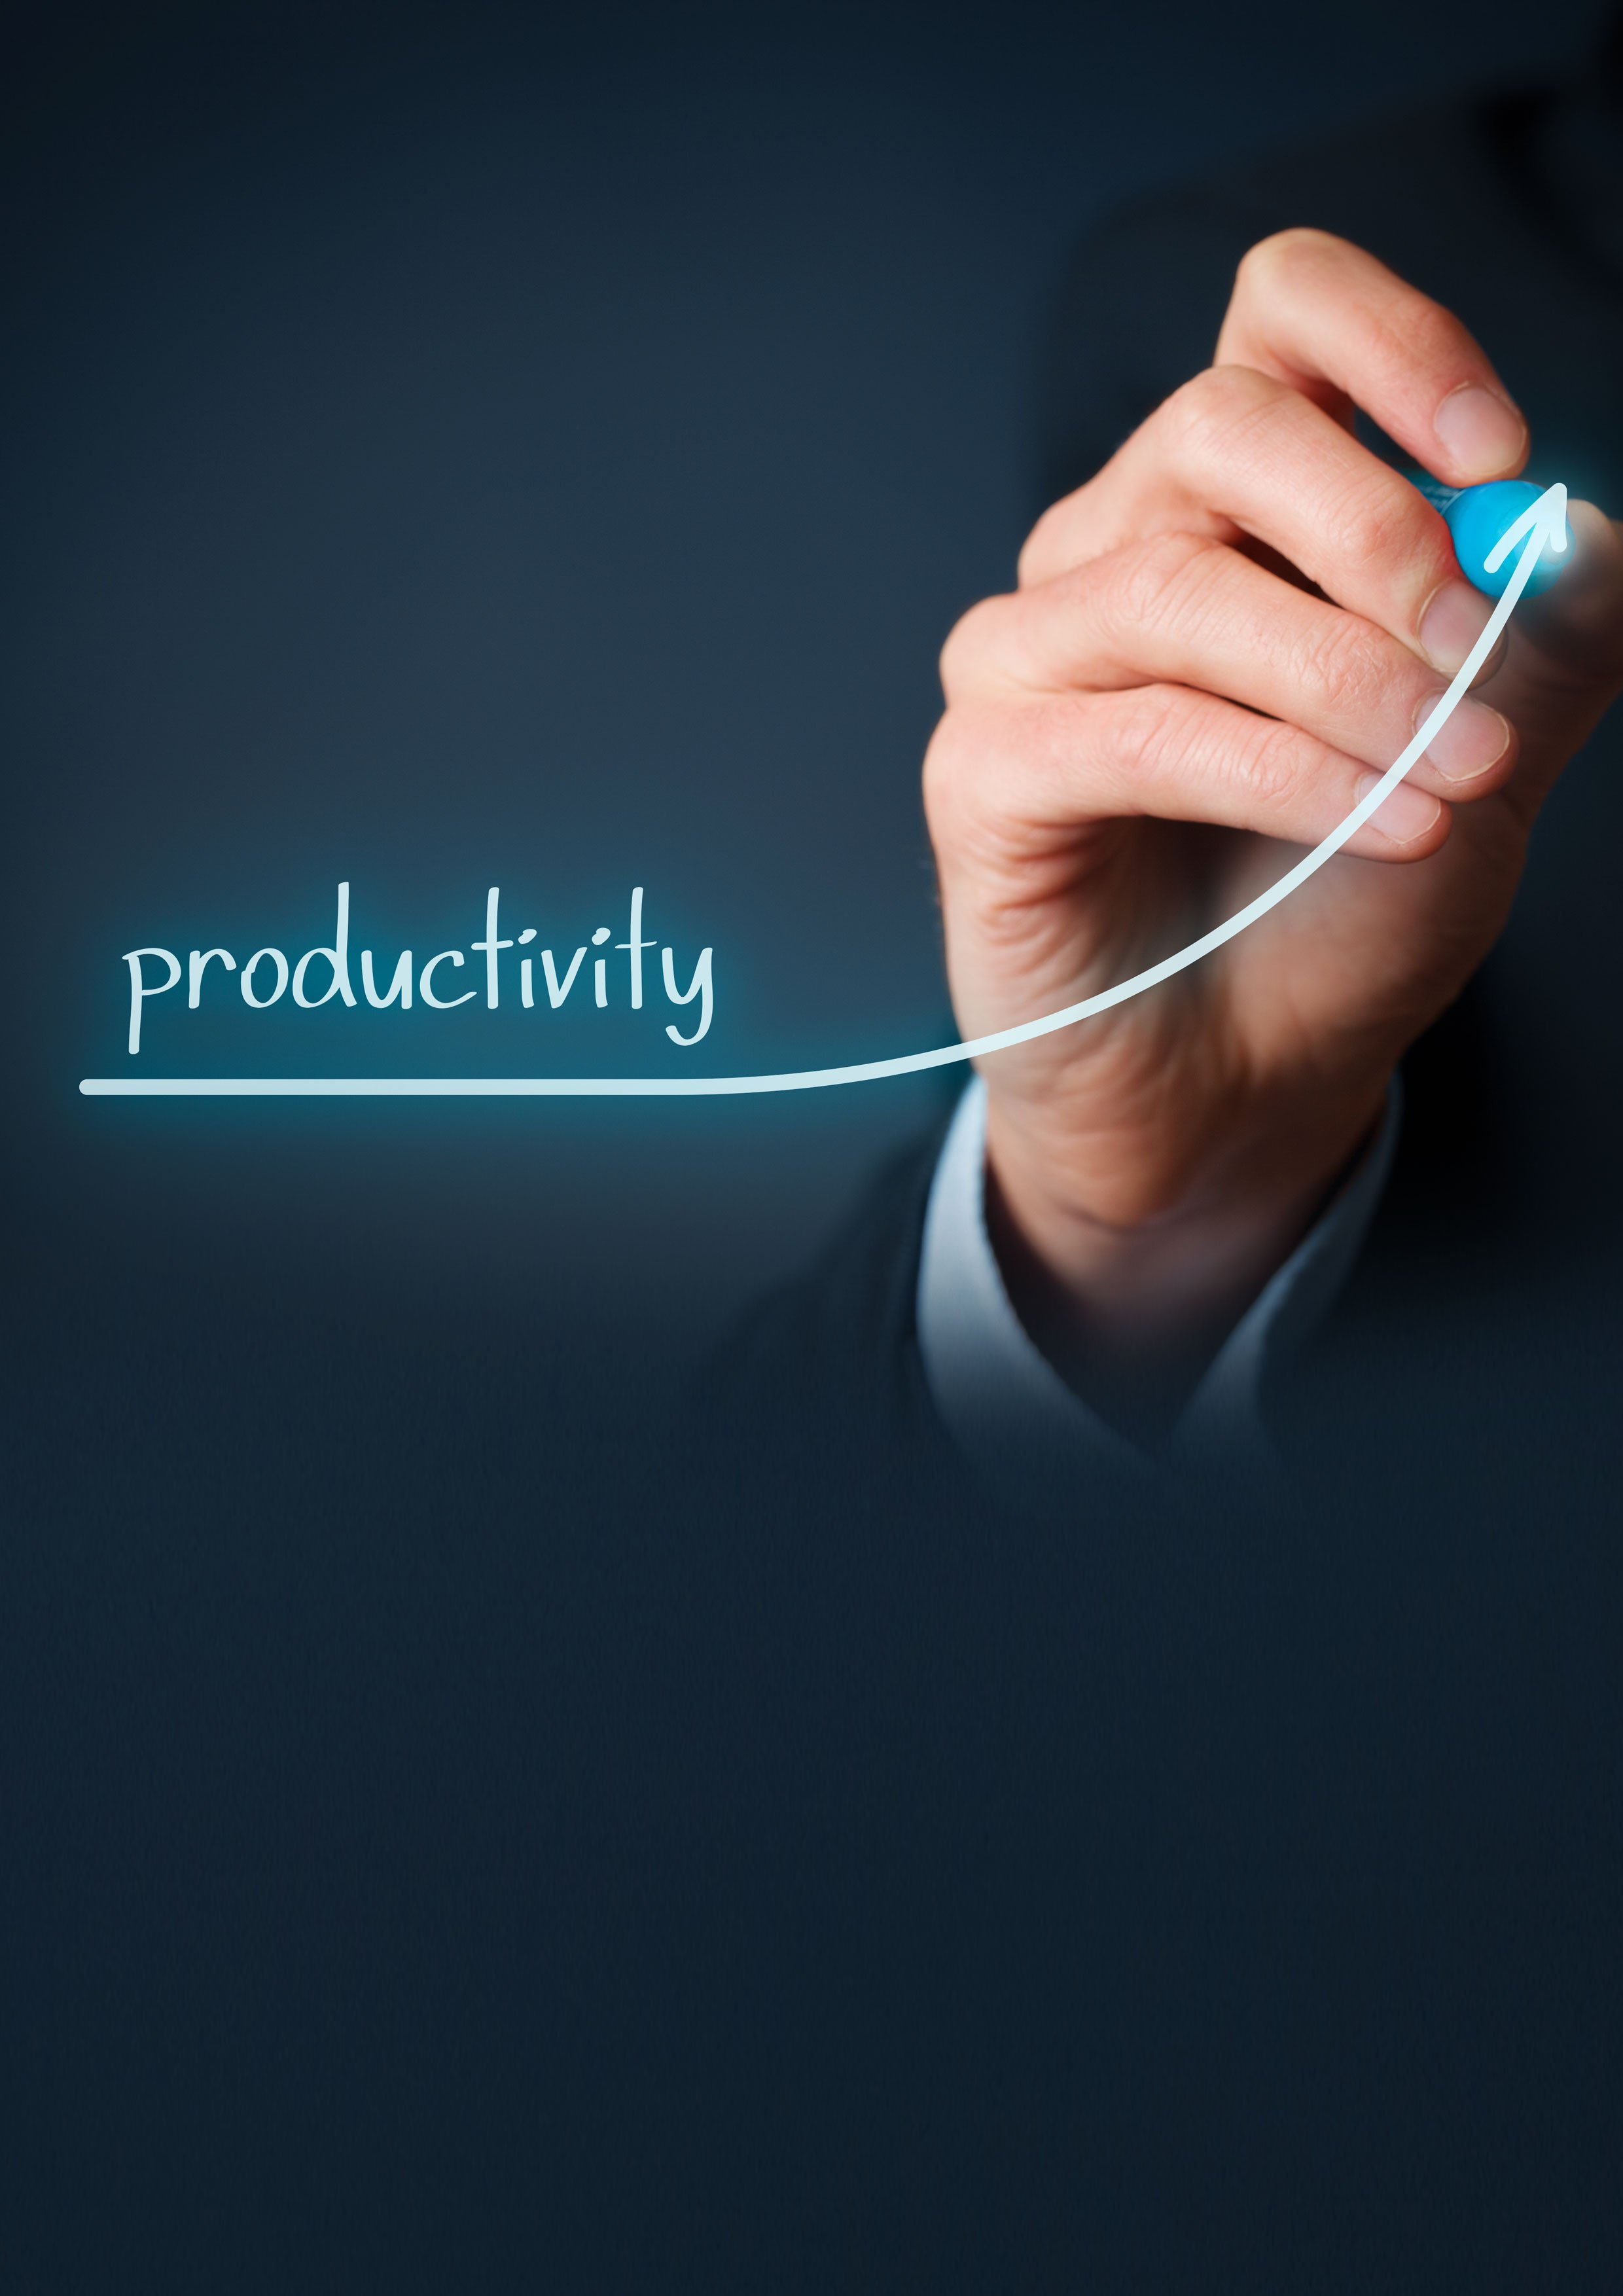 improving productivity through quality enhancement and